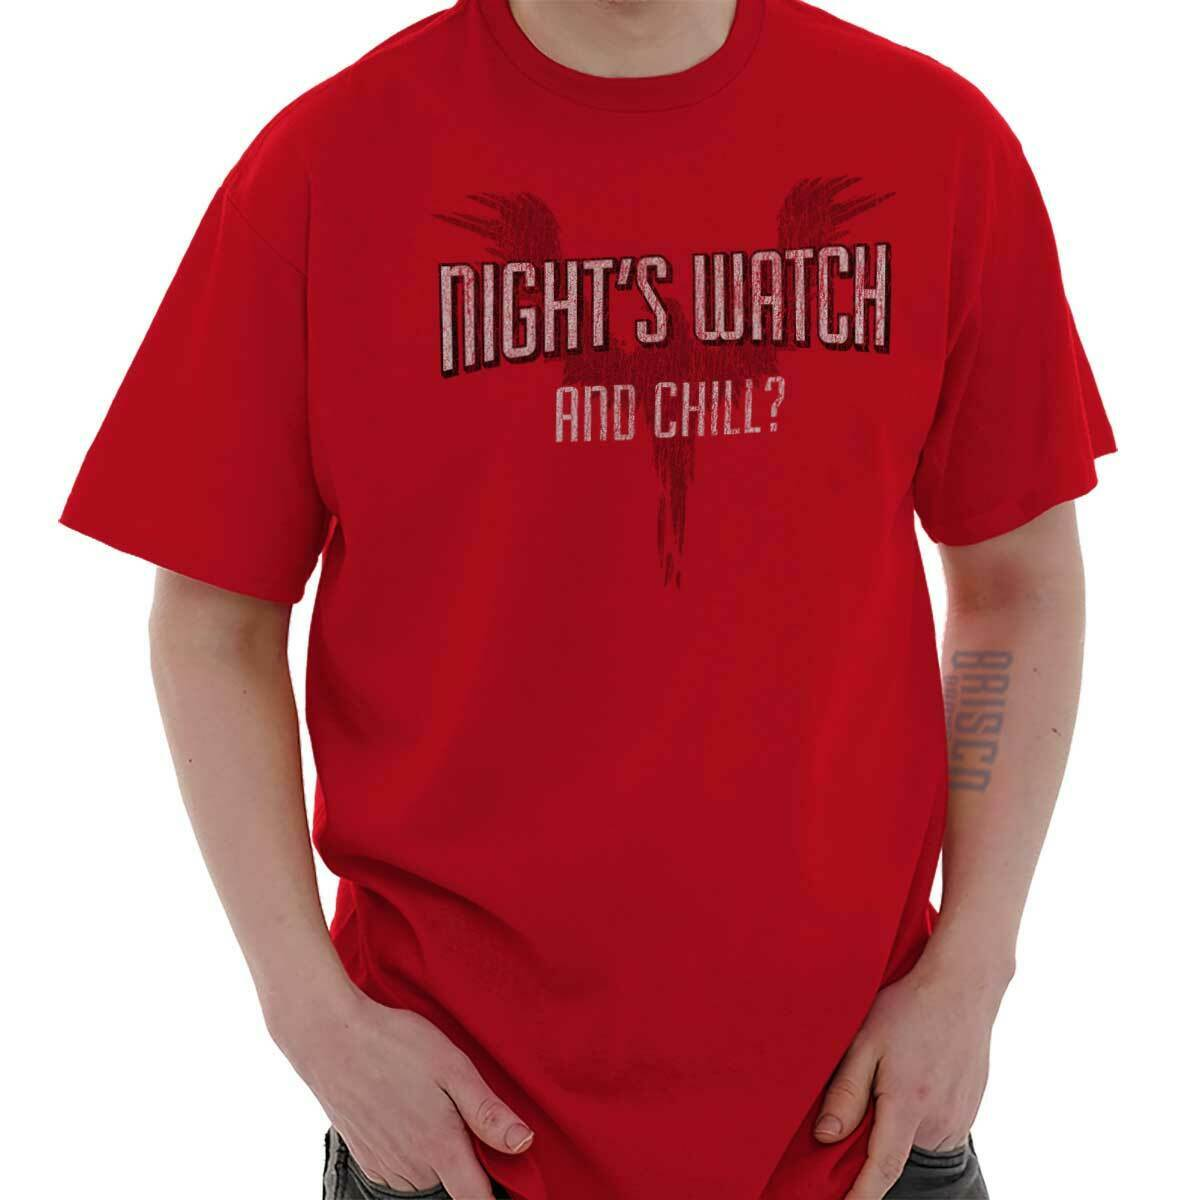 Night Watch And Chill Fantasy TV Show Funny Short Sleeve T-Shirt Tees Tshirts Mens Shirts Short Sleeve Trend Clothing image